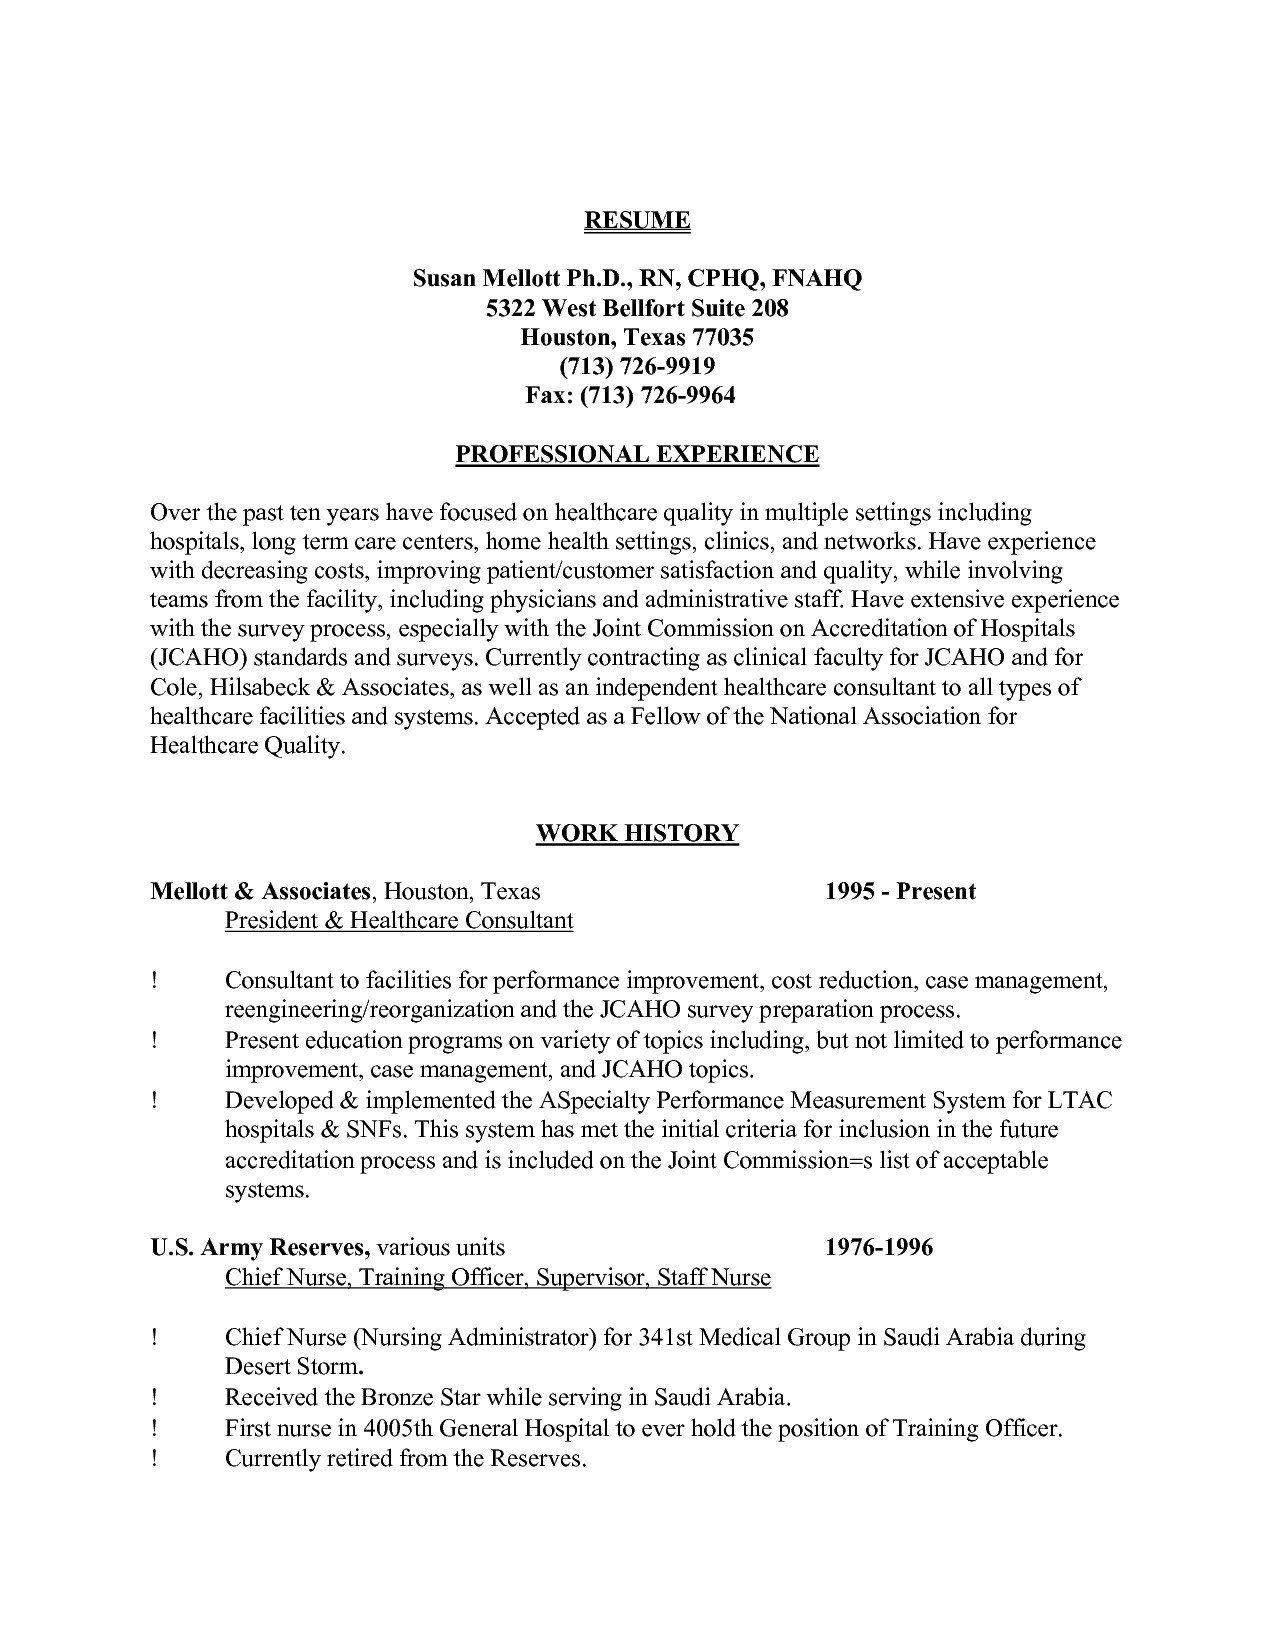 Dismissal Letter Template - Star Resume Examples Termination Letter Template Fresh Separation